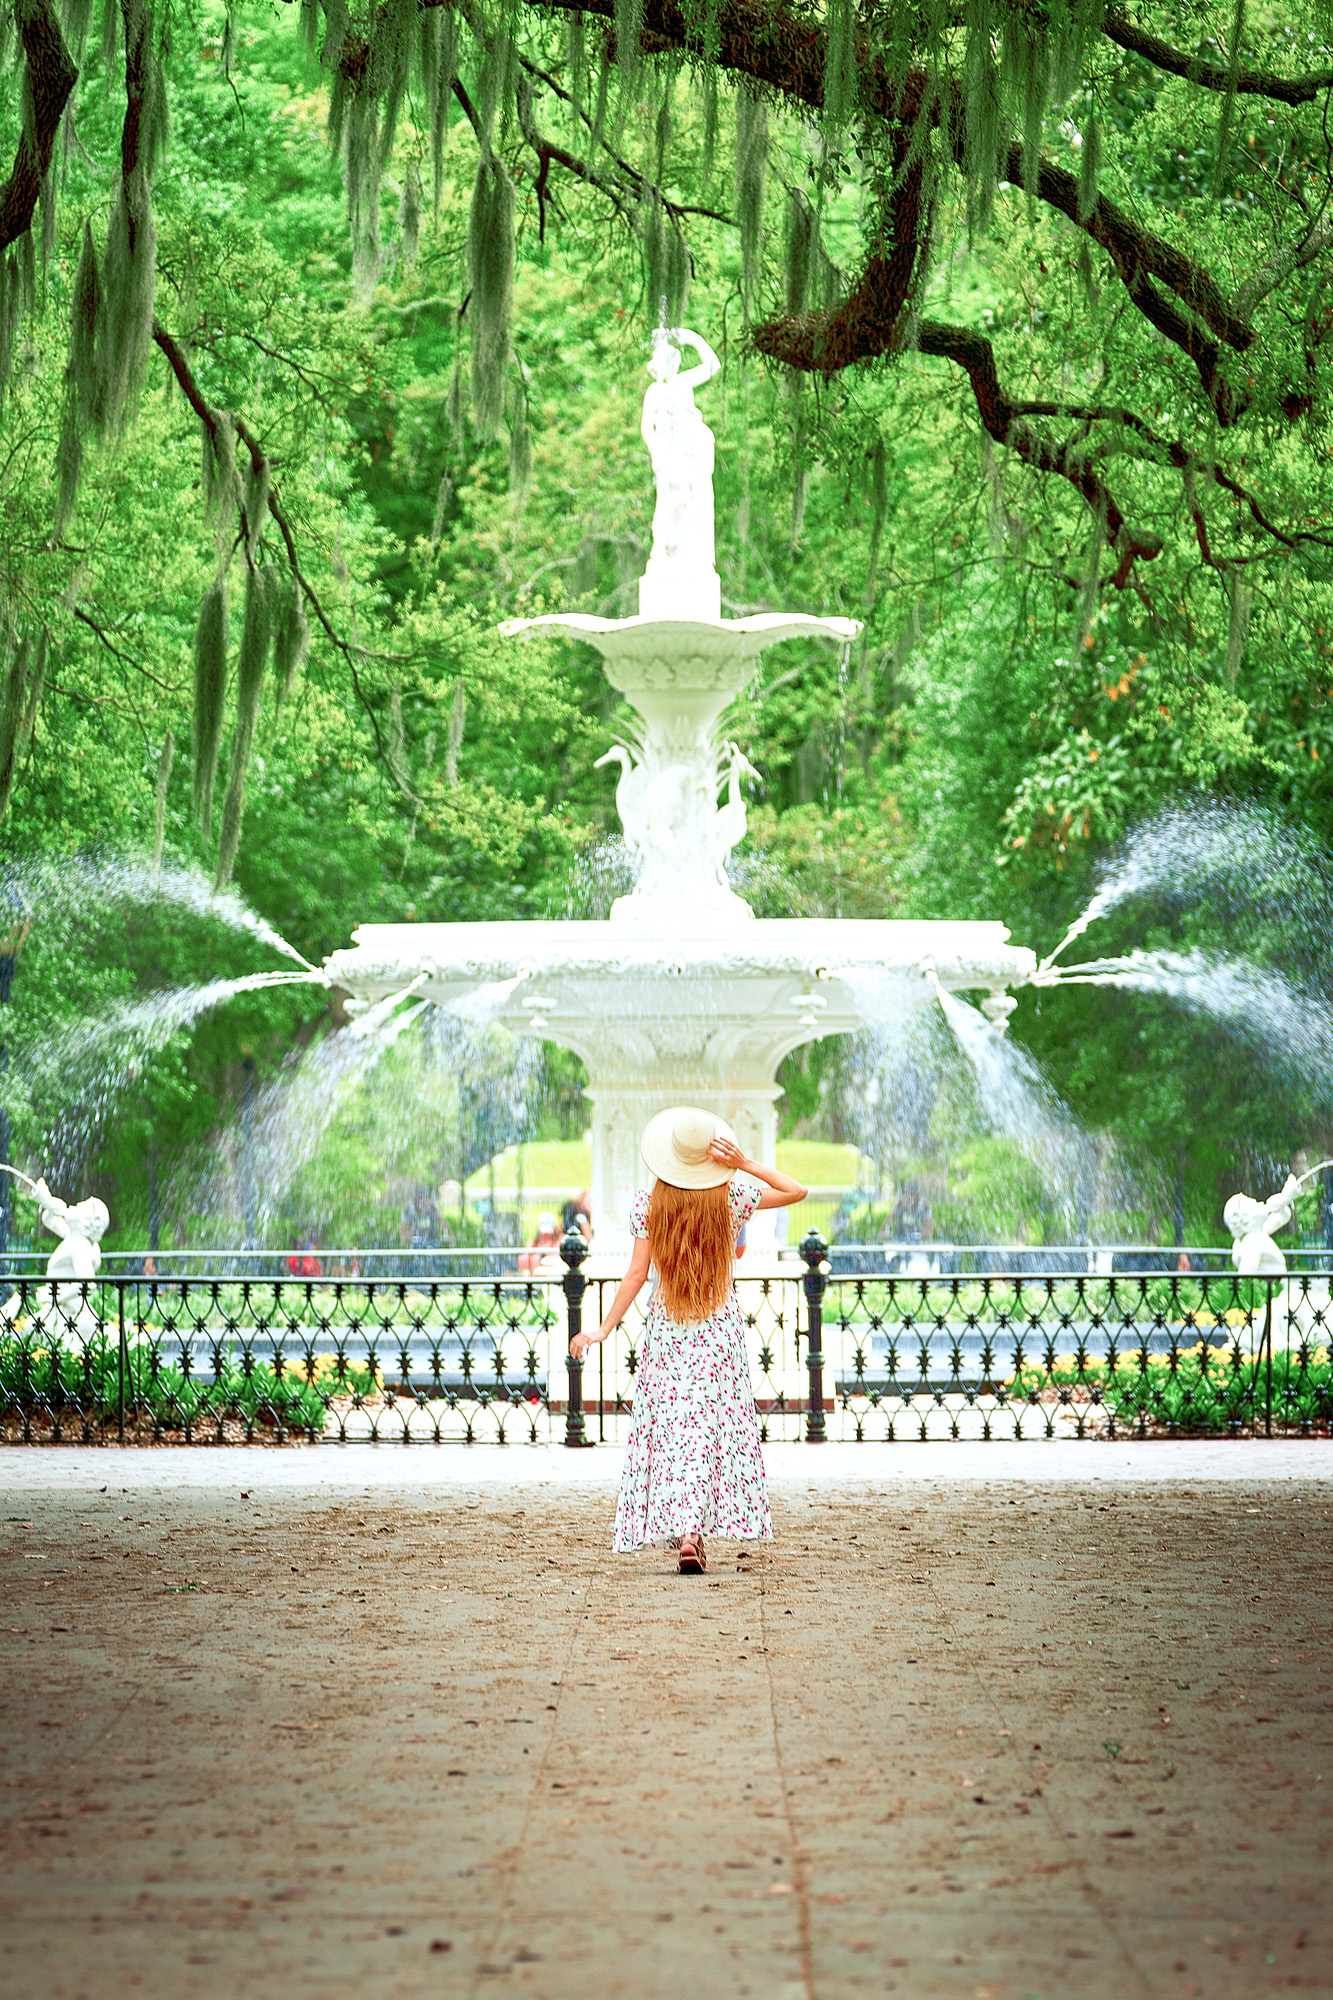 A woman in a white long sun dress with long hair and a white sun hat standing in front of the famous Forsyth fountain. Behind it are tons of trees covered in Spanish moss. It is one of the most iconic Savannah photo spots.